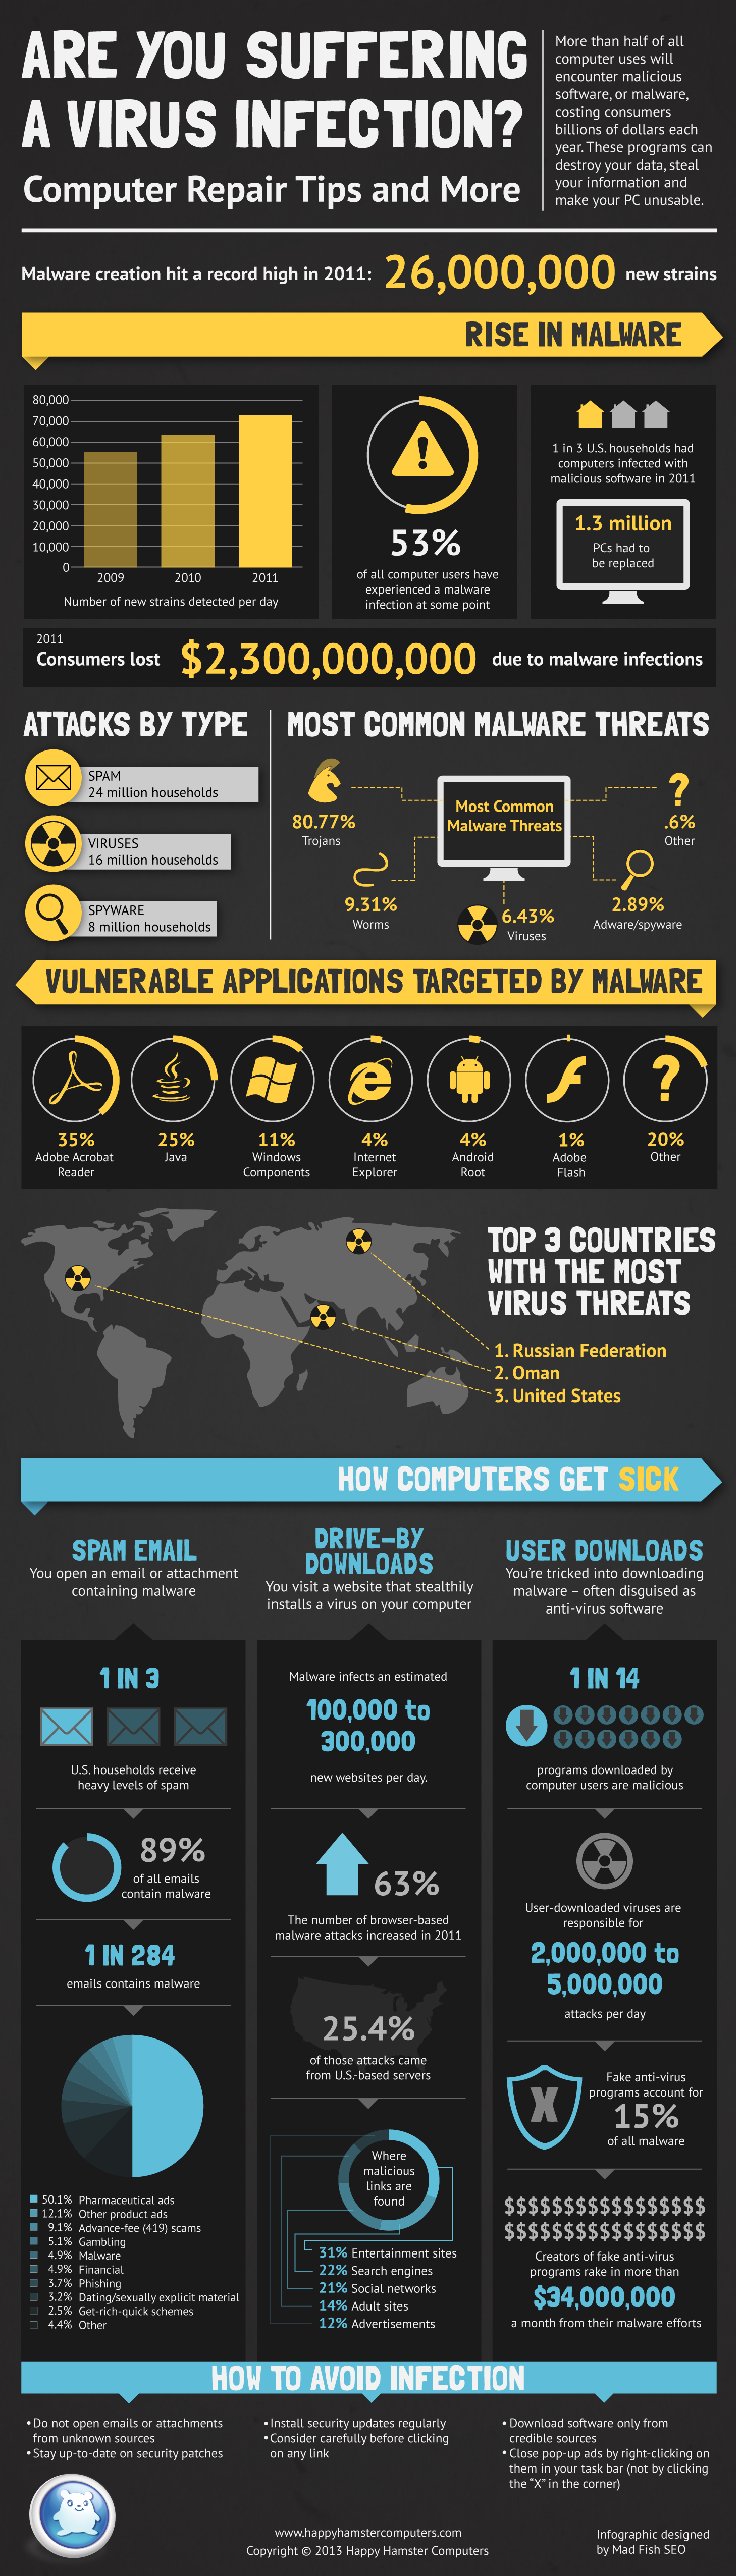 Virus Infection: Computer Repair Tips - An Infographic from Infographics Showcase